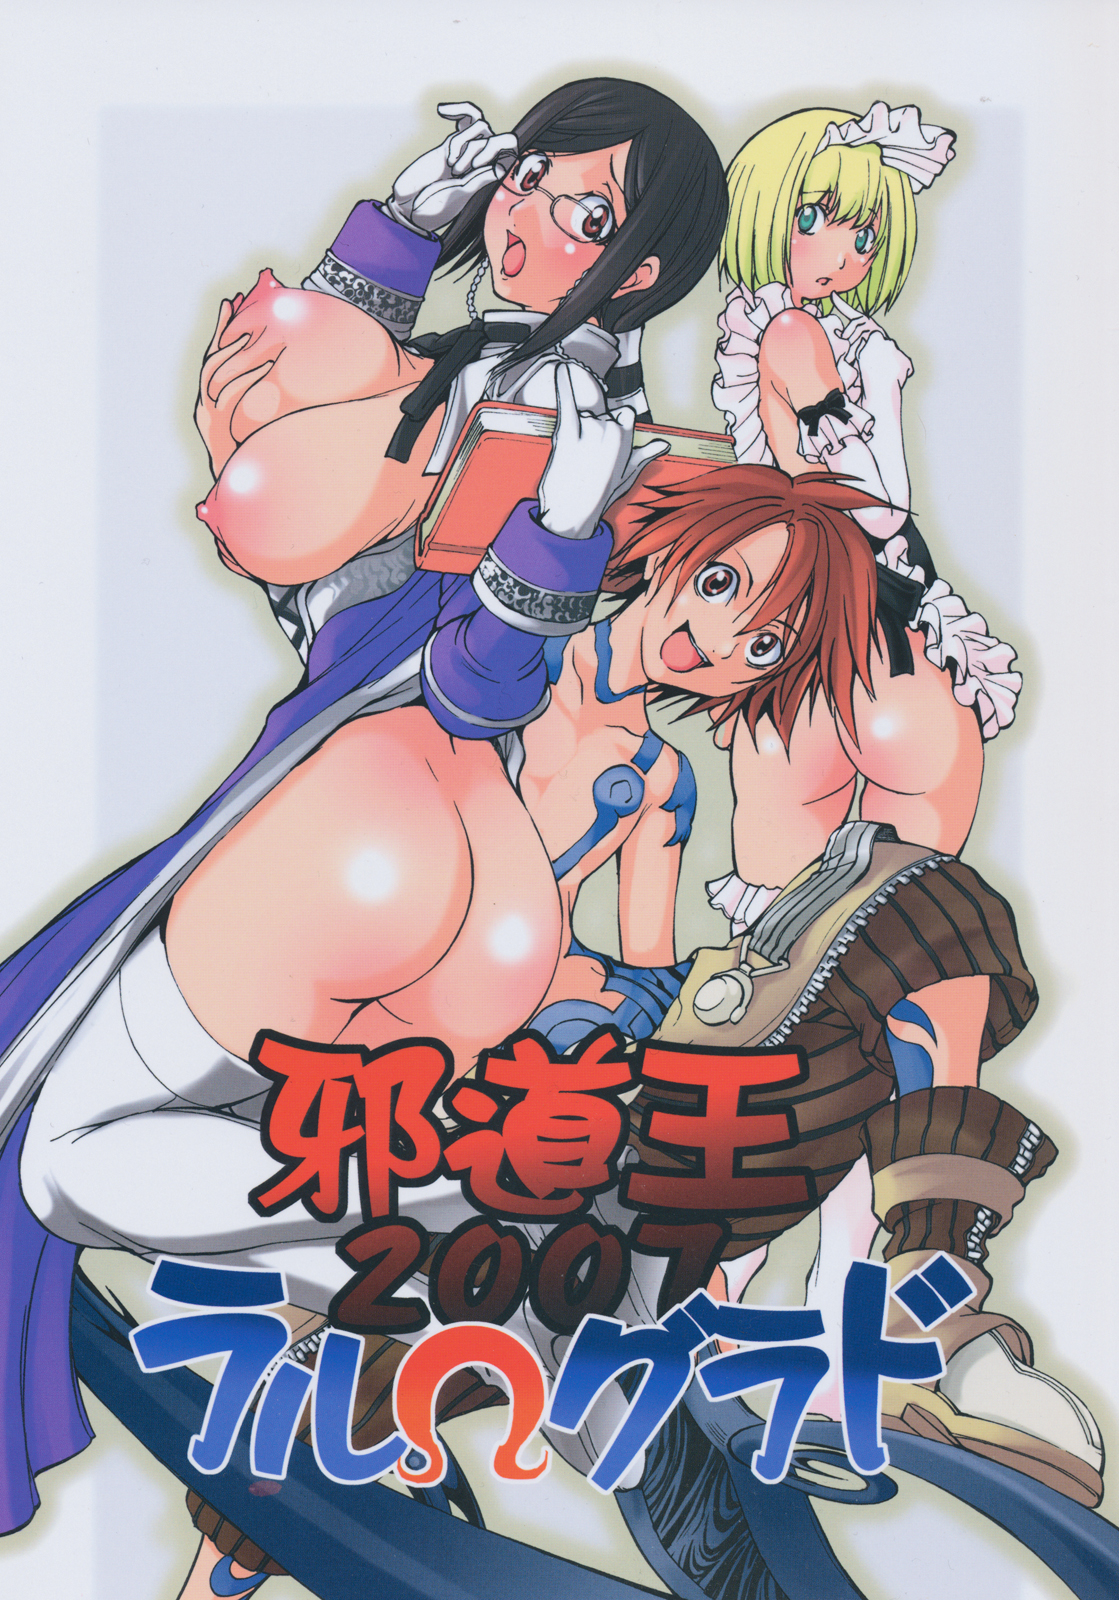 Animax sex blue dragon hentia woman